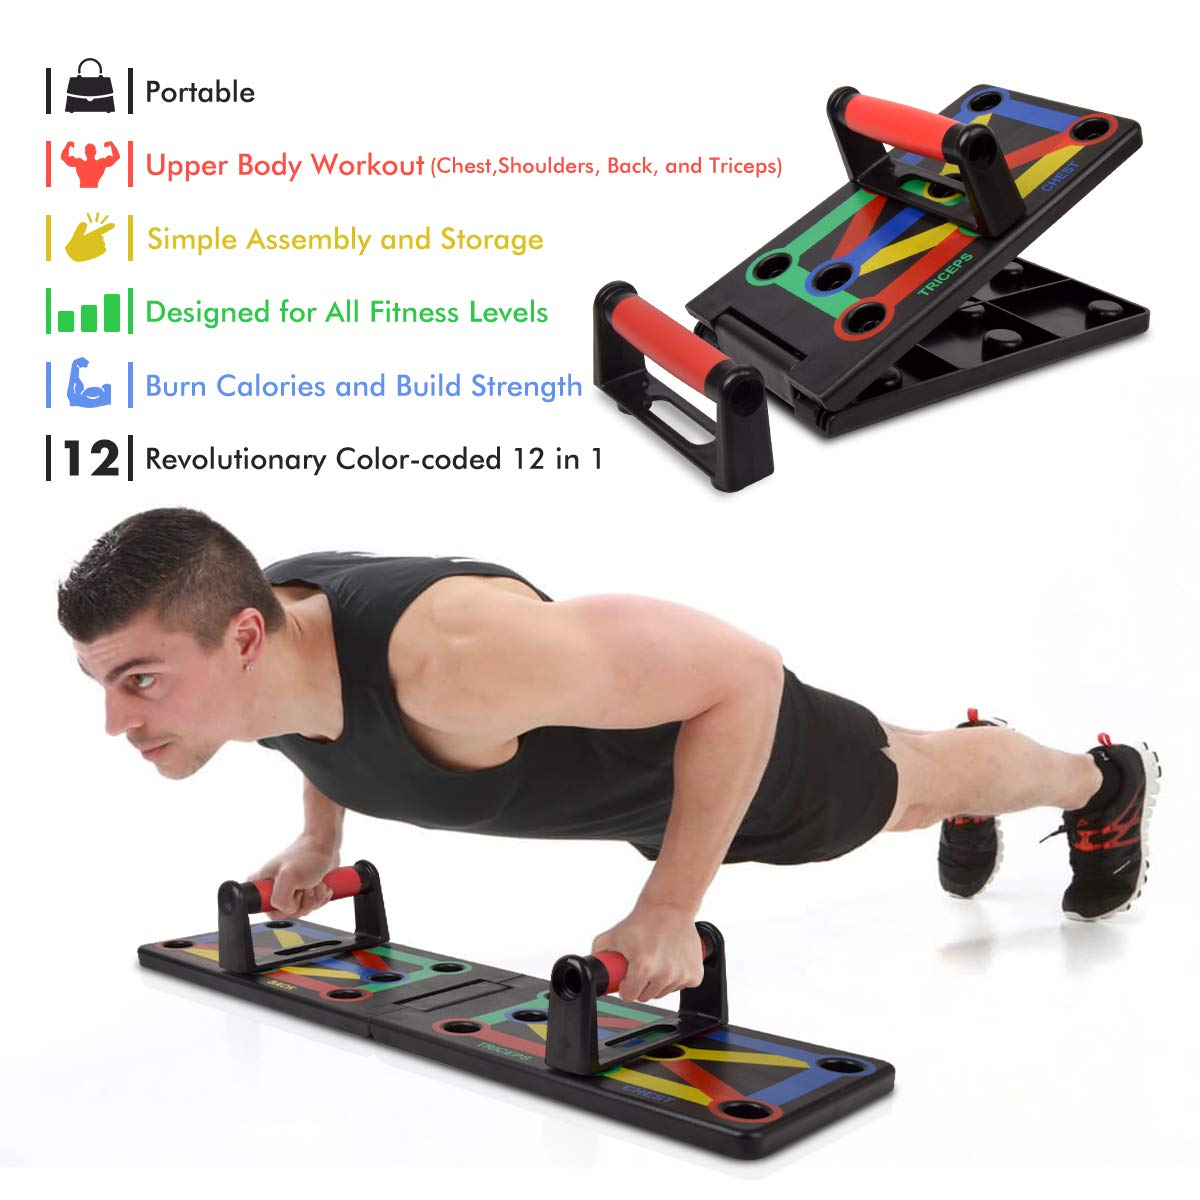 12-in-1 Workout Board Portable Push Up Board Training System for Men Women Home Fitness Training Taytop Push Up Board